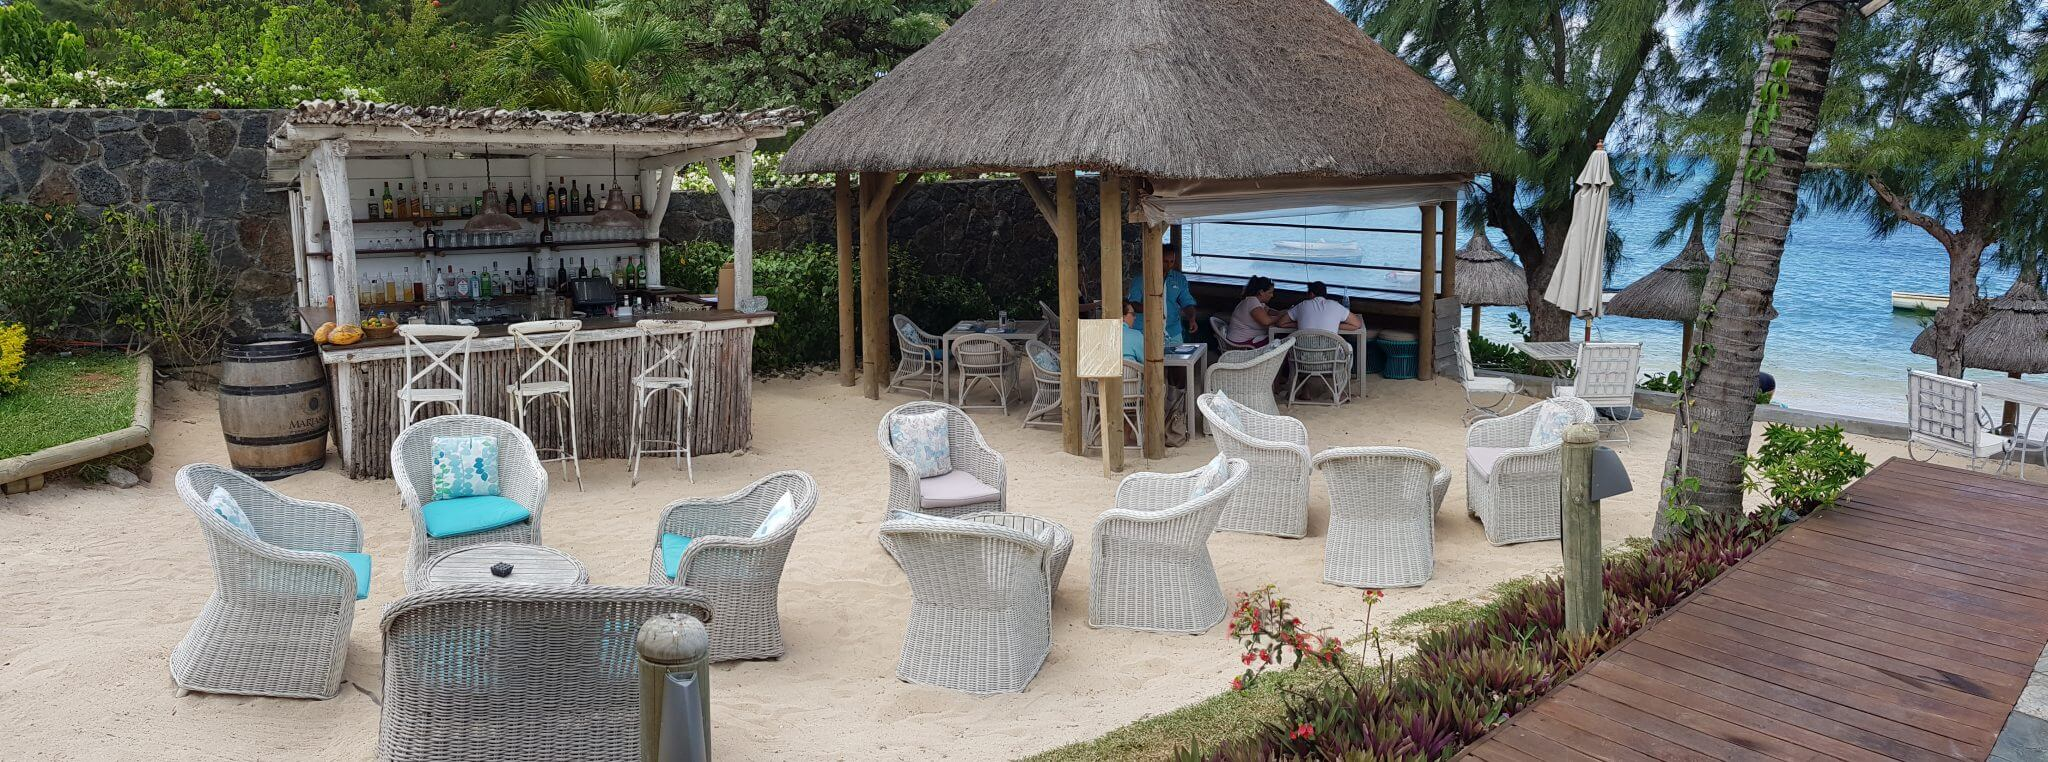 seapoint boutique hotel ile maurice